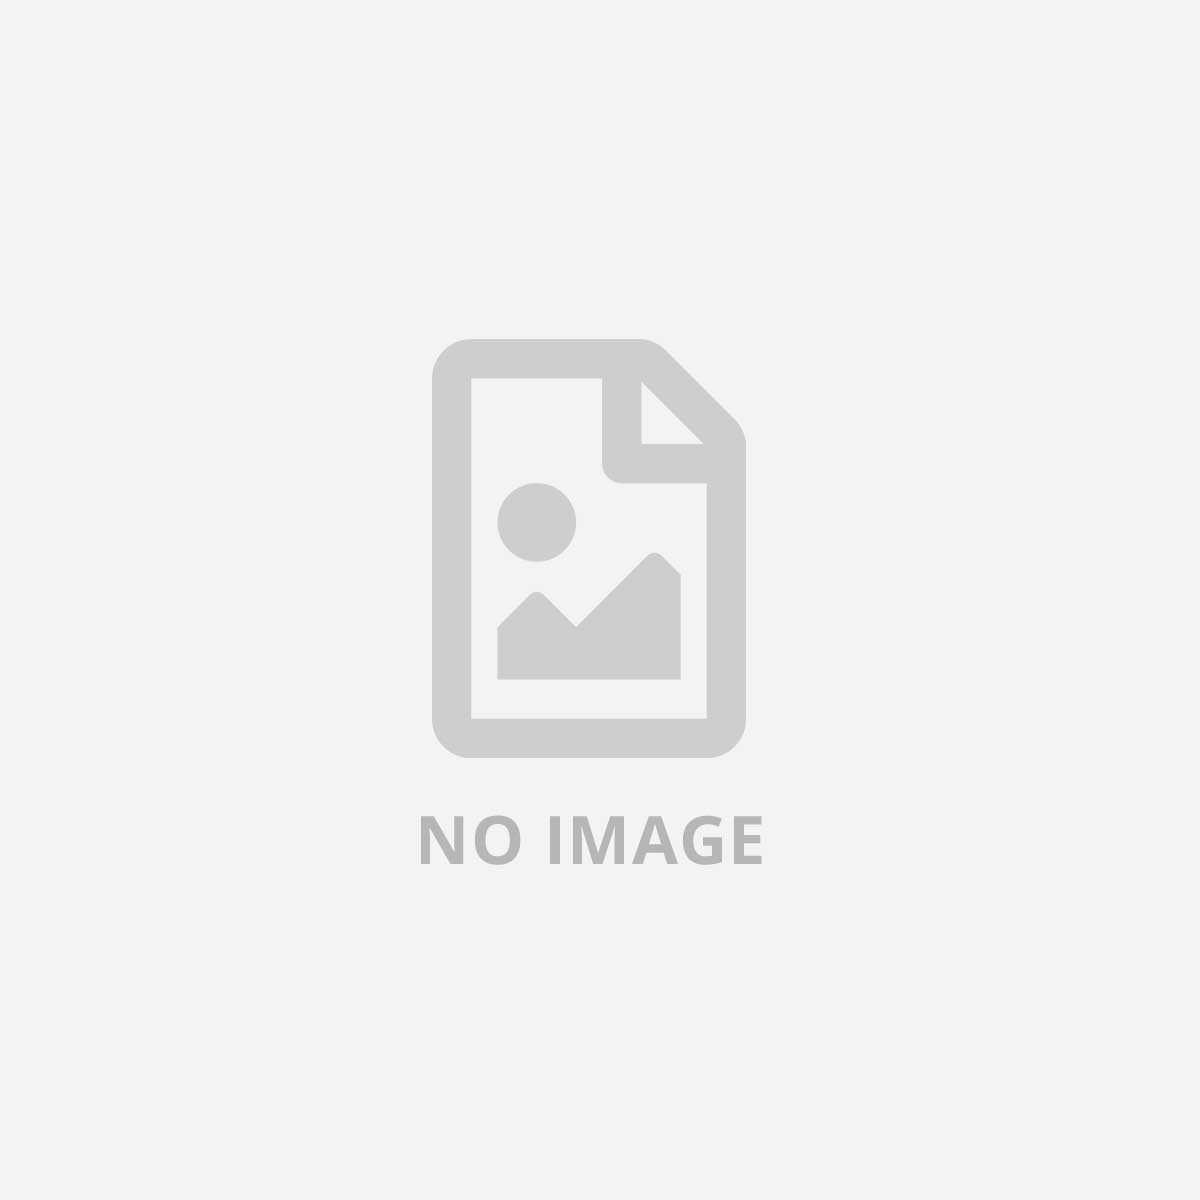 BLACK AND DECKER BLACK DECKER TRAPANO KR911K-QS